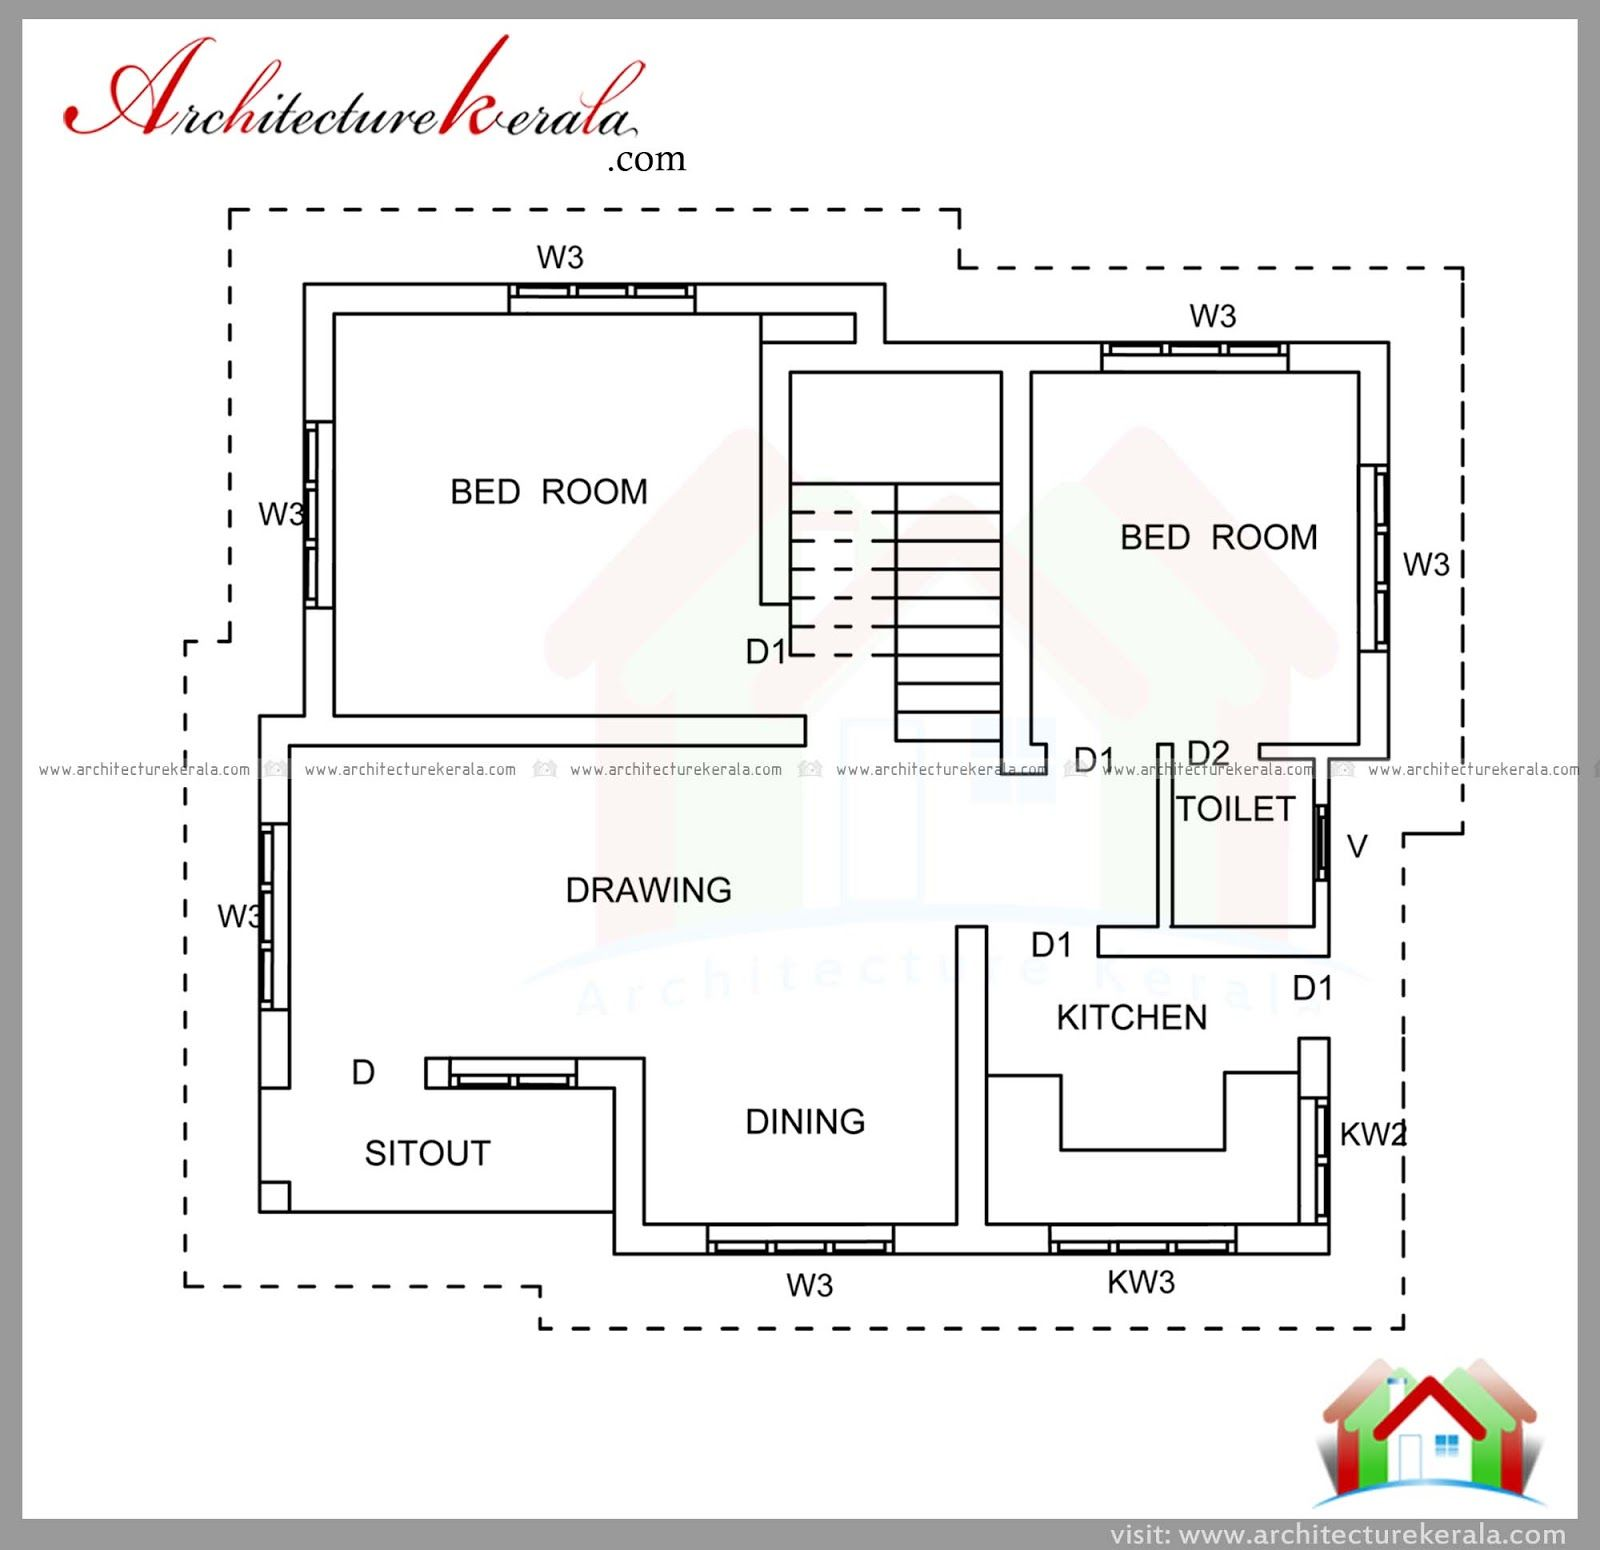 700 Sqft Plan And Elevation For Middle Class Family Architecture Kerala In 2020 Indian House Plans Home Map Design Model House Plan